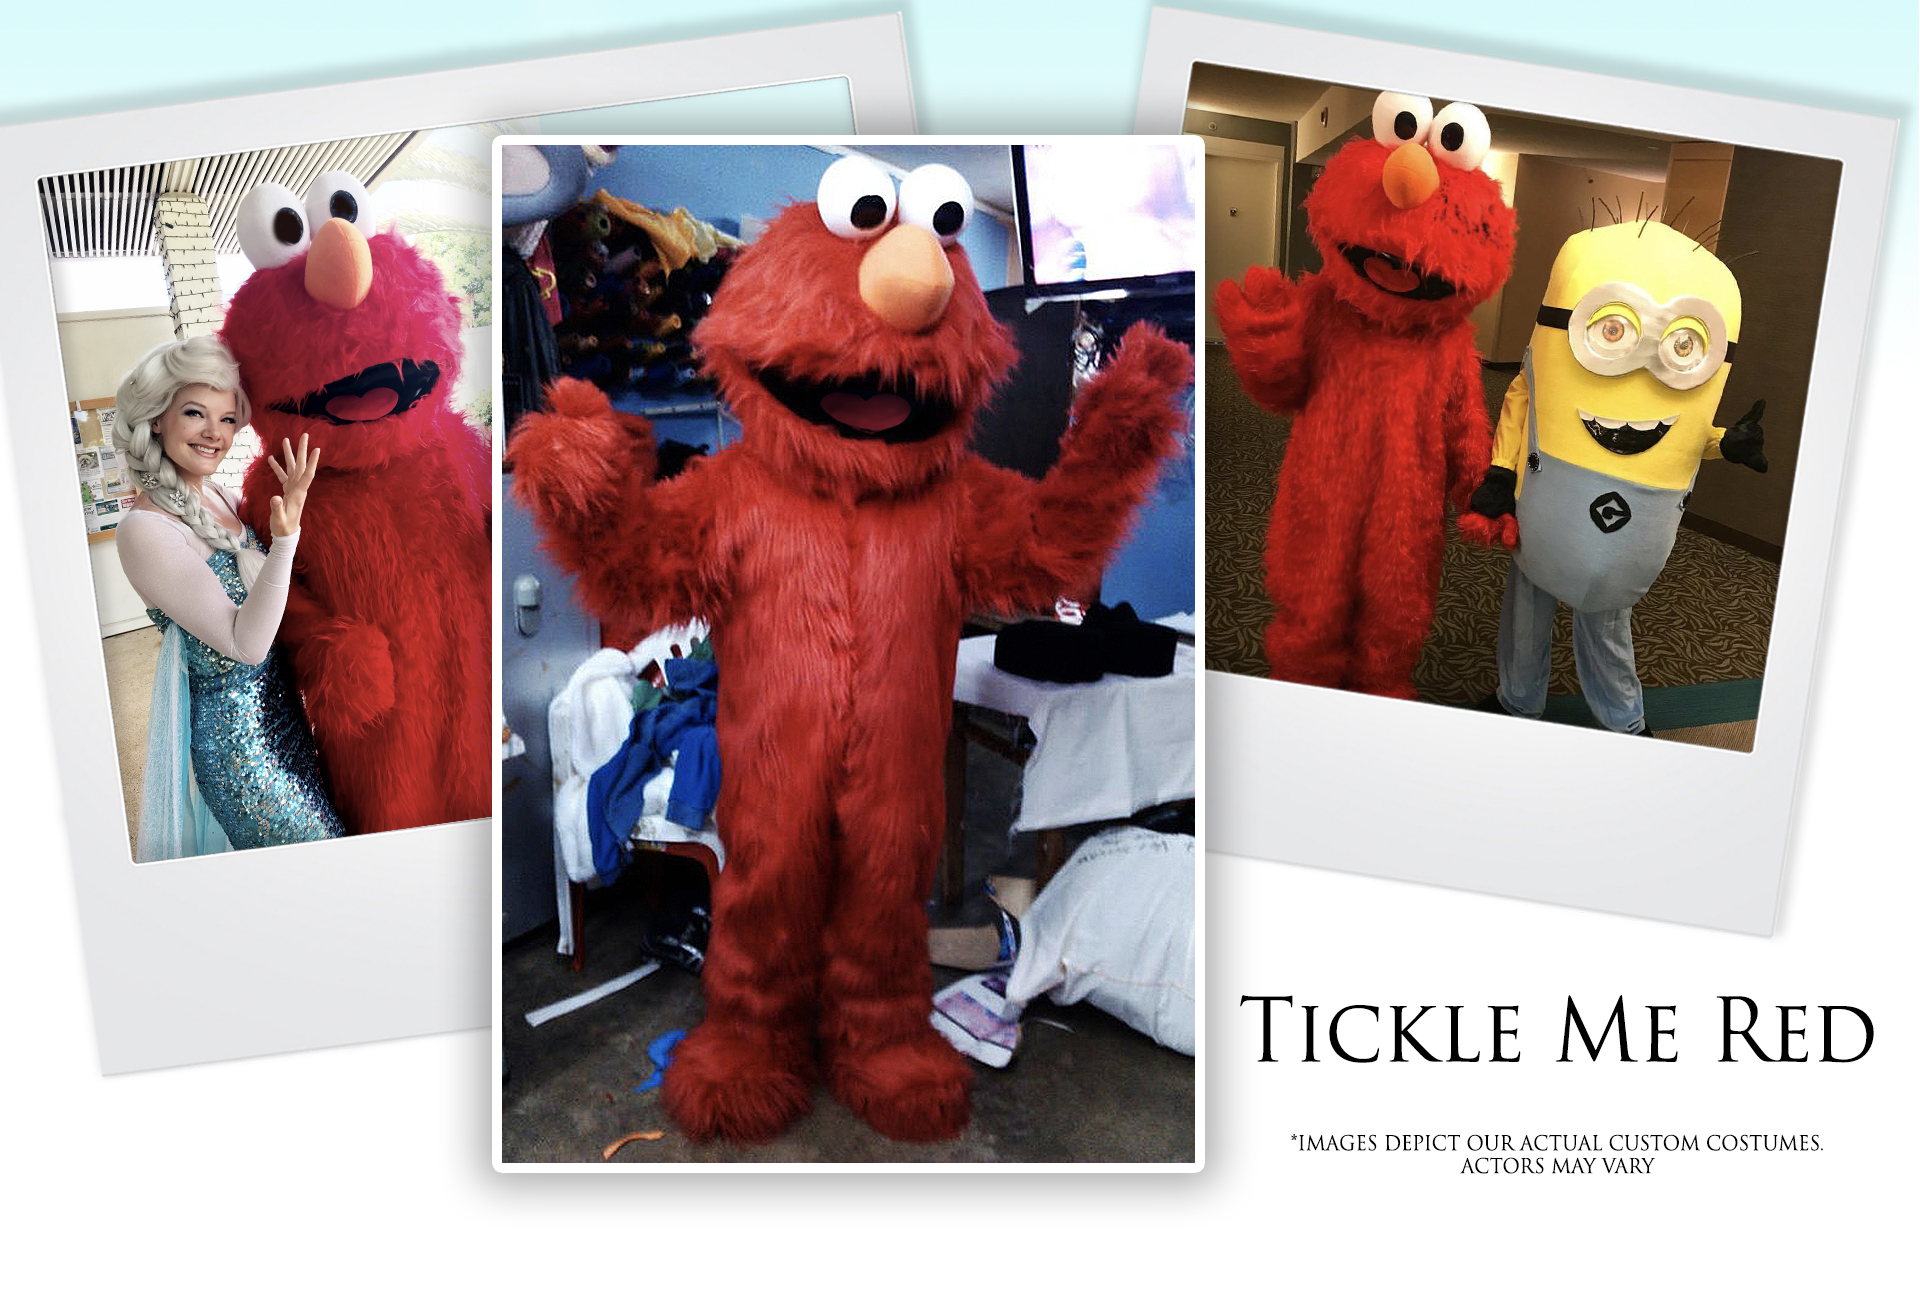 Tickle Me Red